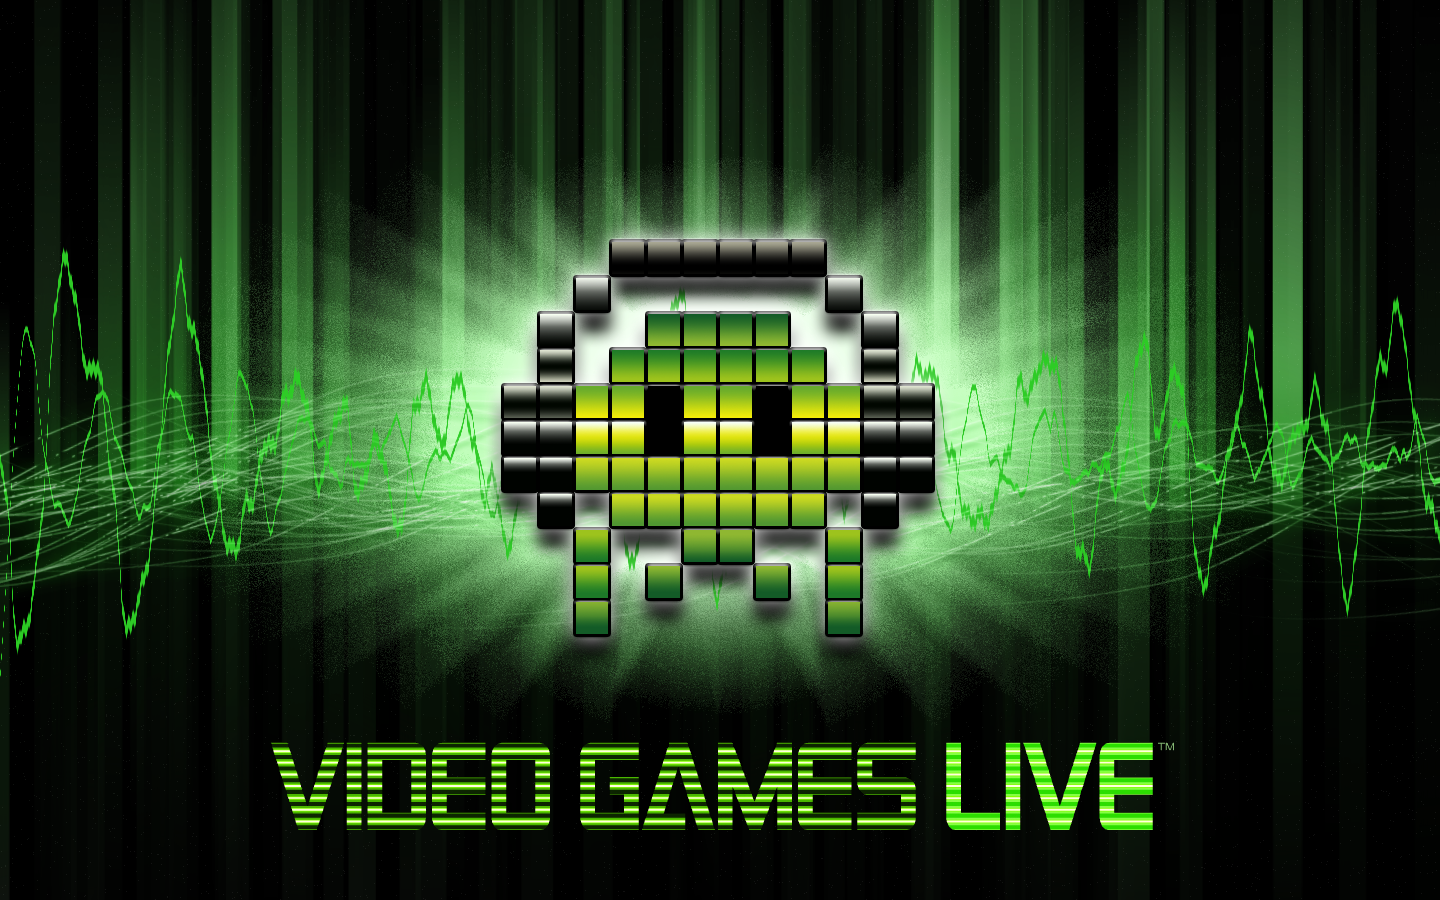 Video Game Live Wallpaper